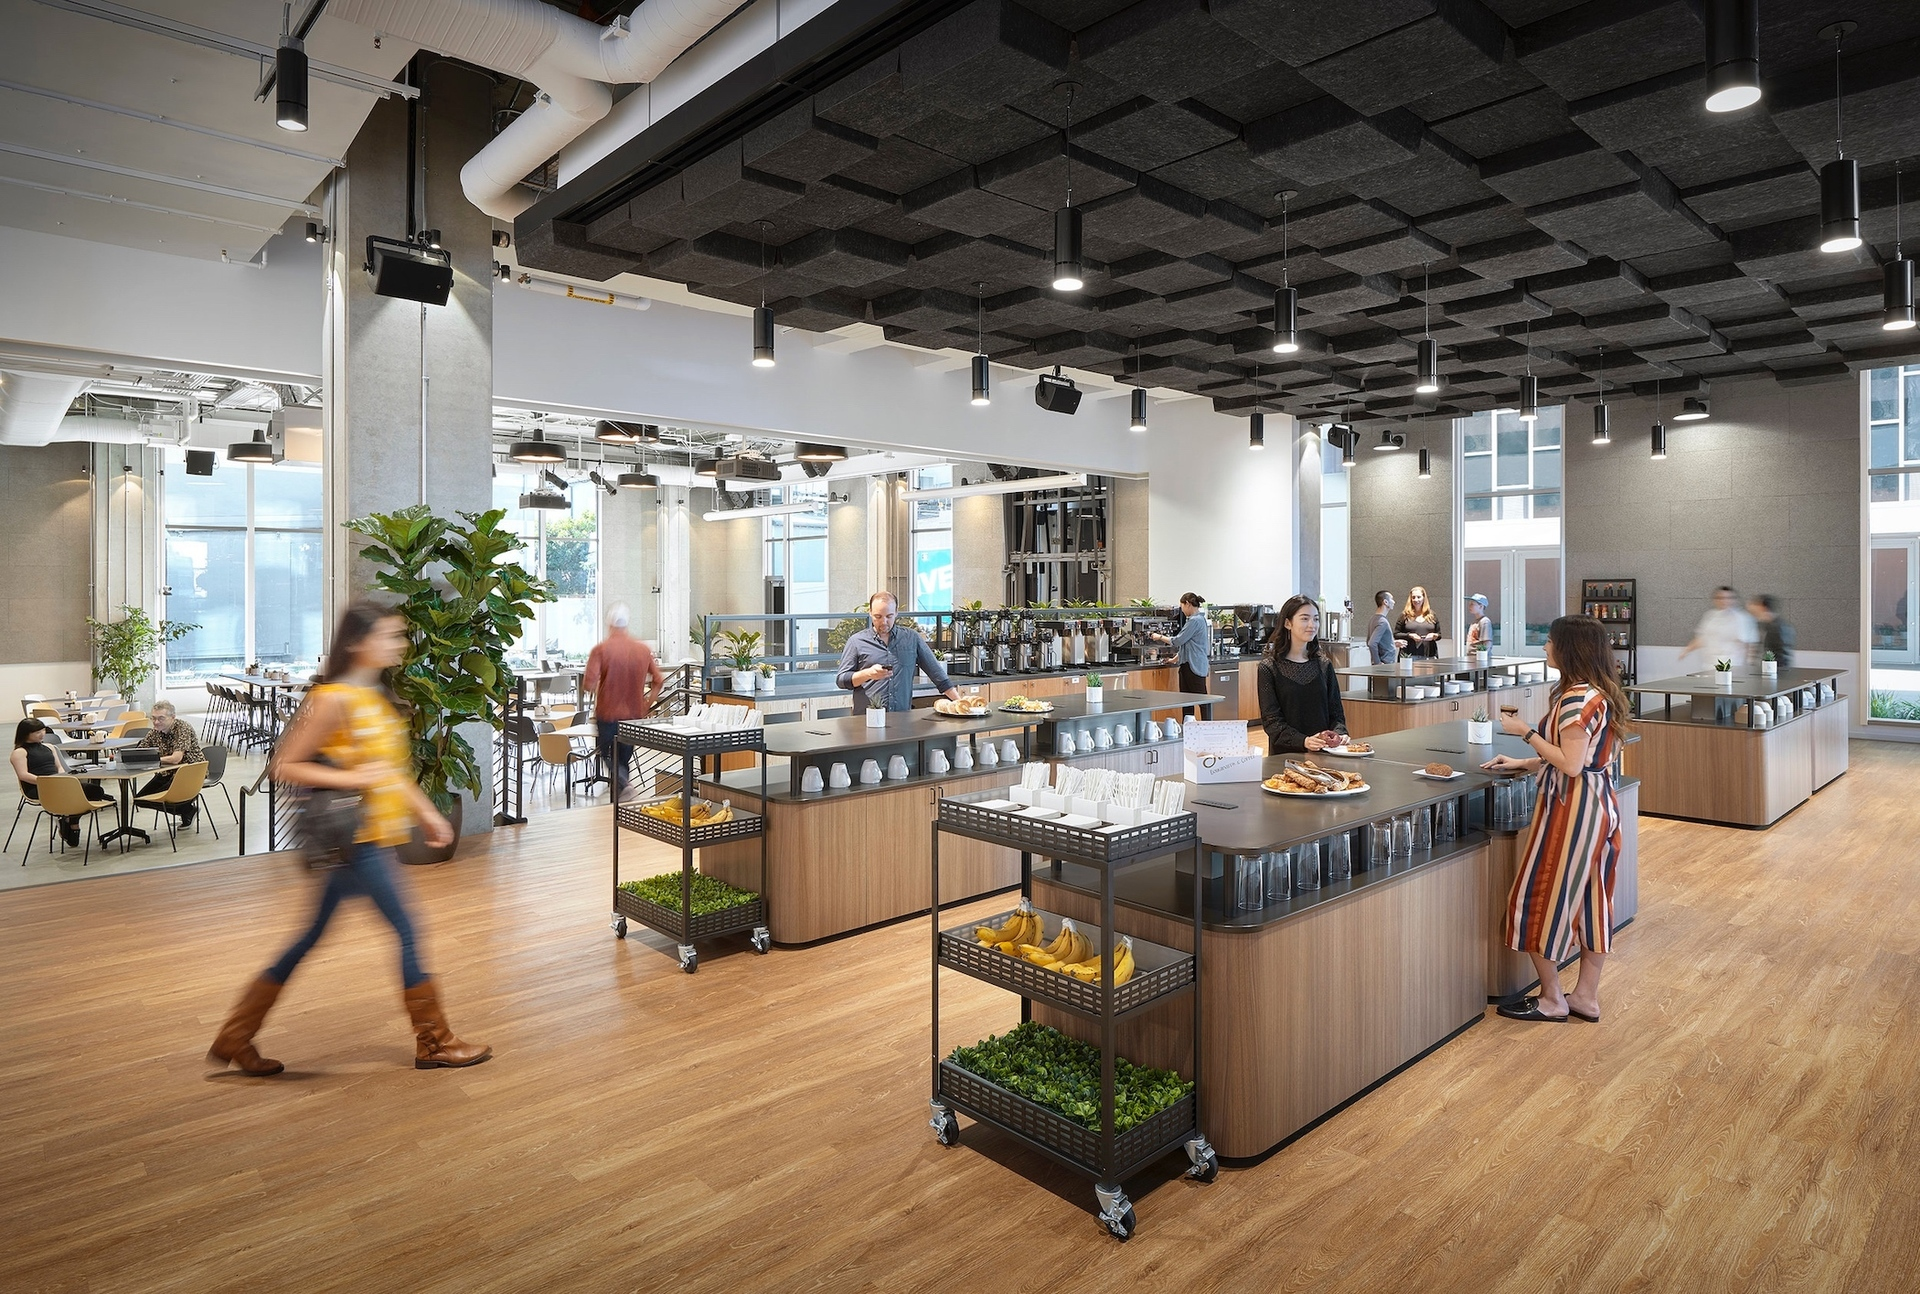 An easily accessible office eatery for all the enjoy at the Cue office. Meteor Lighting provided their Atria 4 cylinder lights to light various interior spaces.